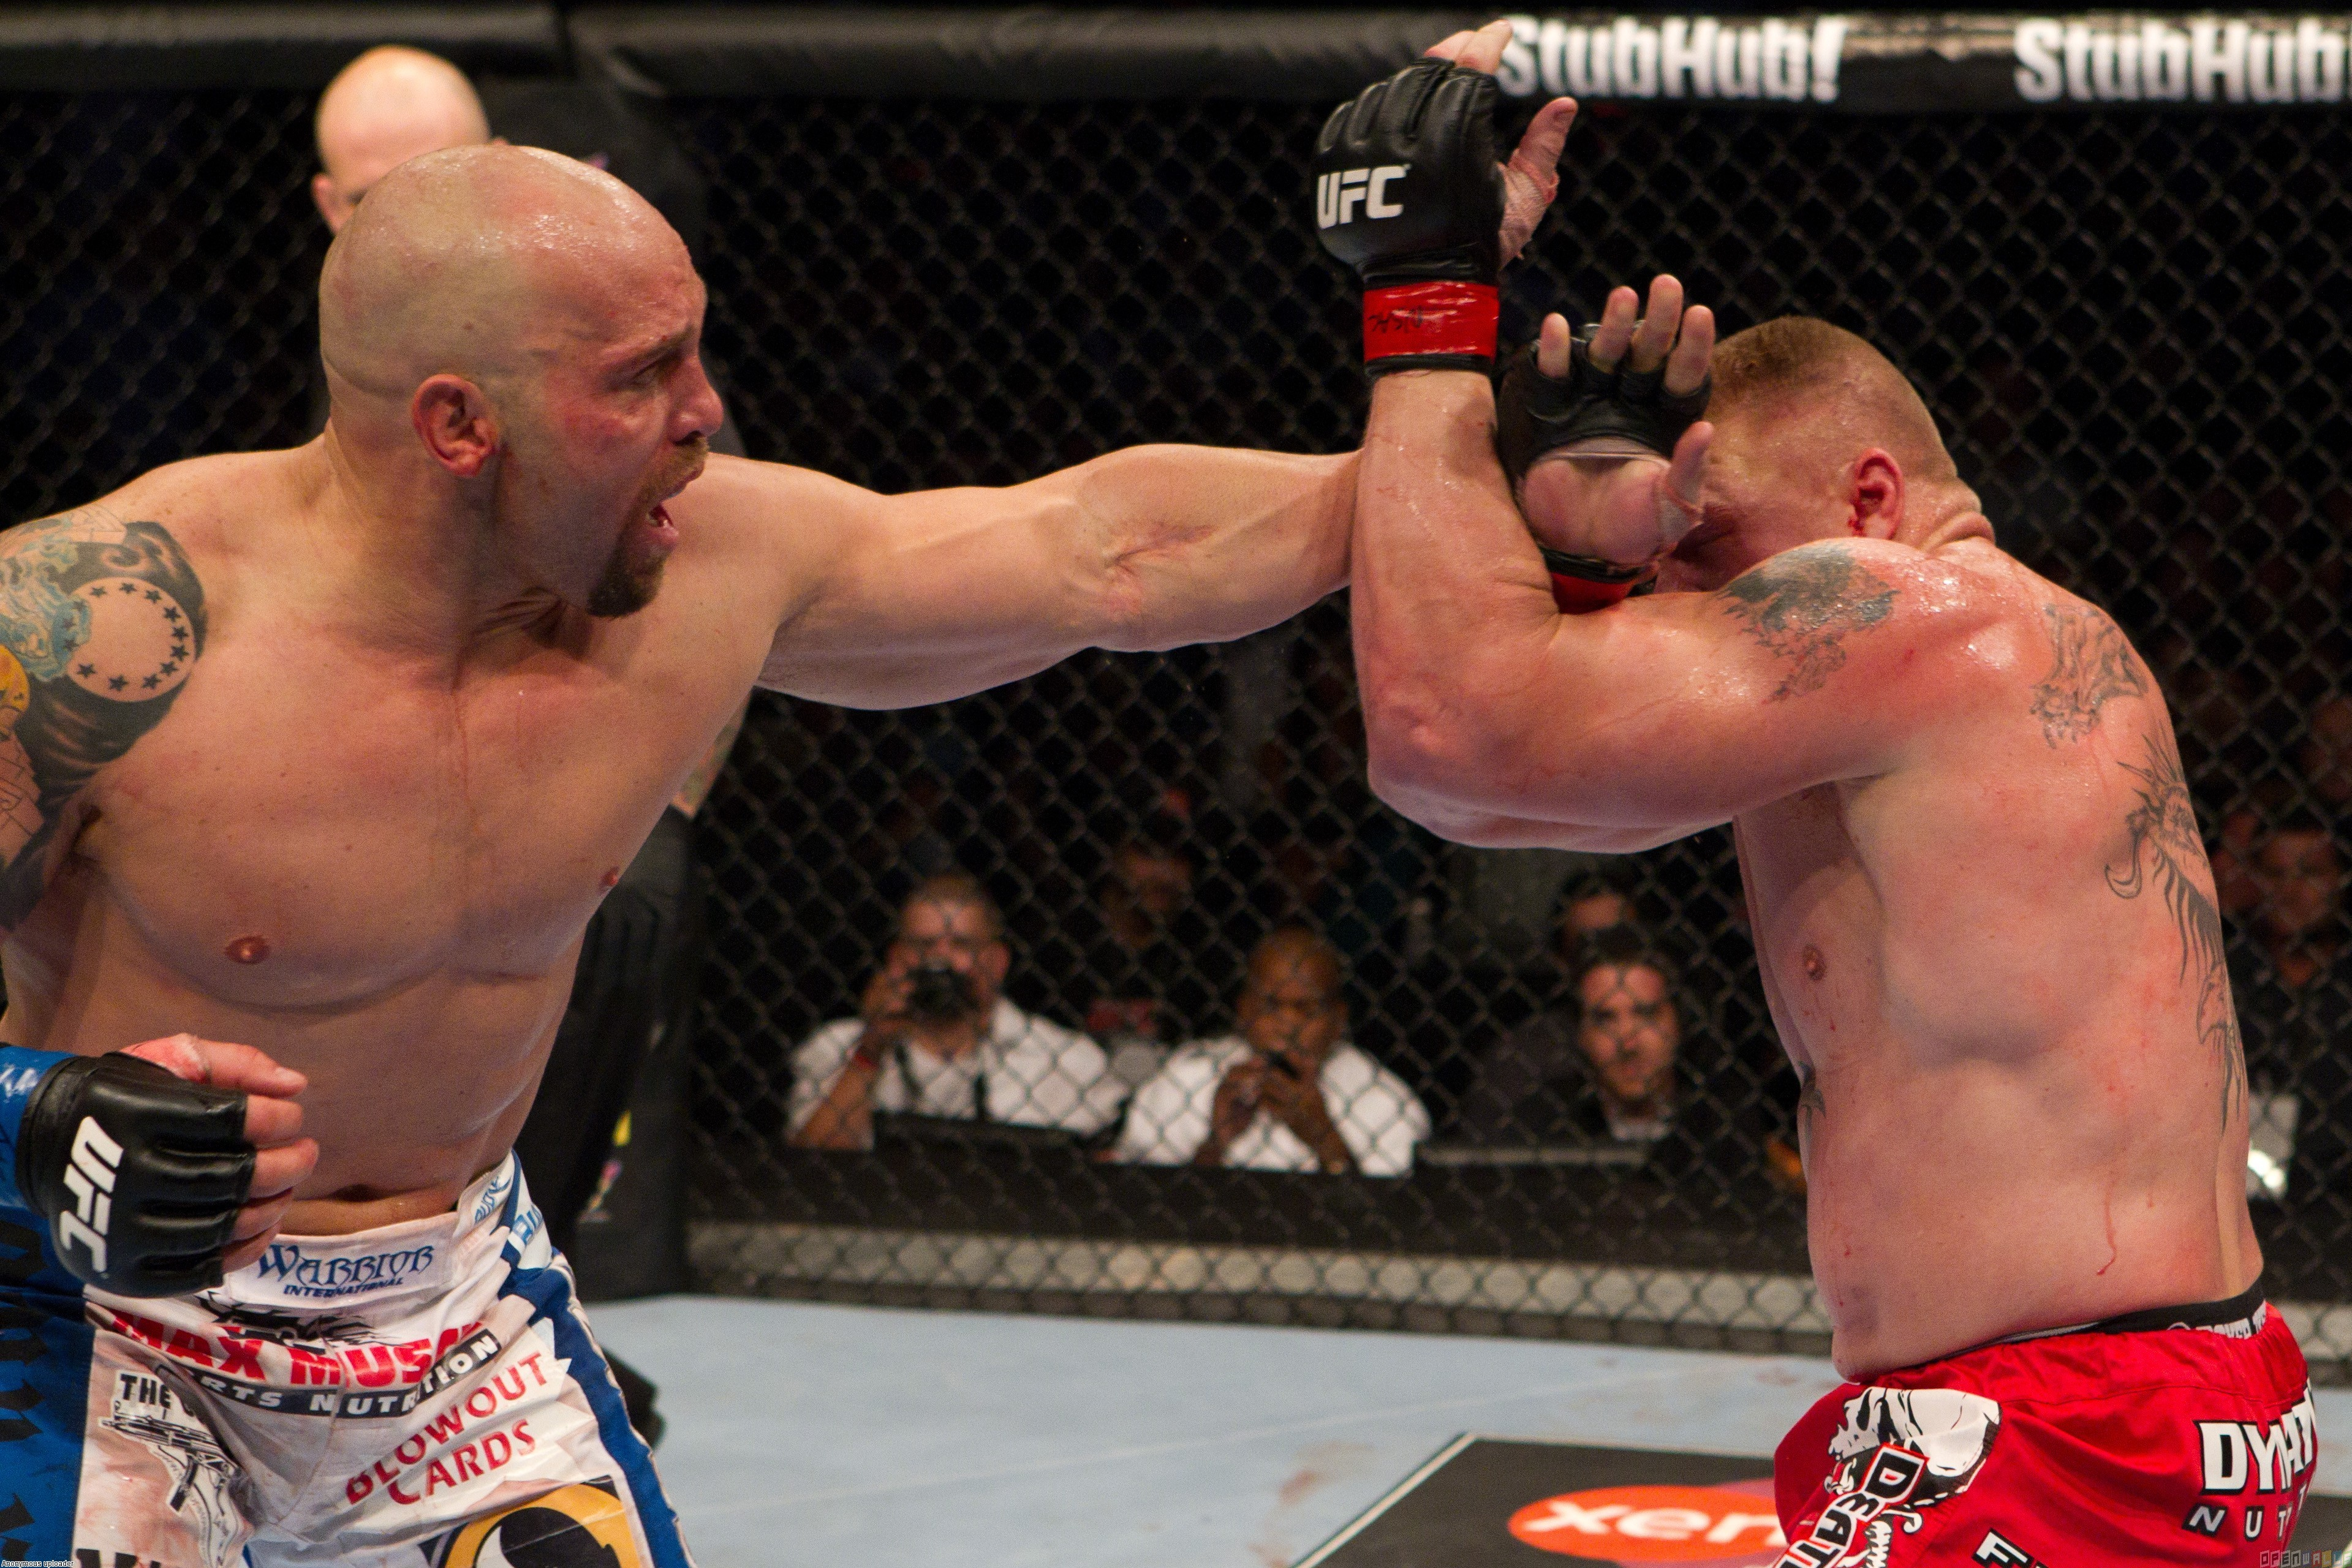 Ufc 116   brock lesnar vs shane carwin wallpaper 14817   Open Walls 3839x2560